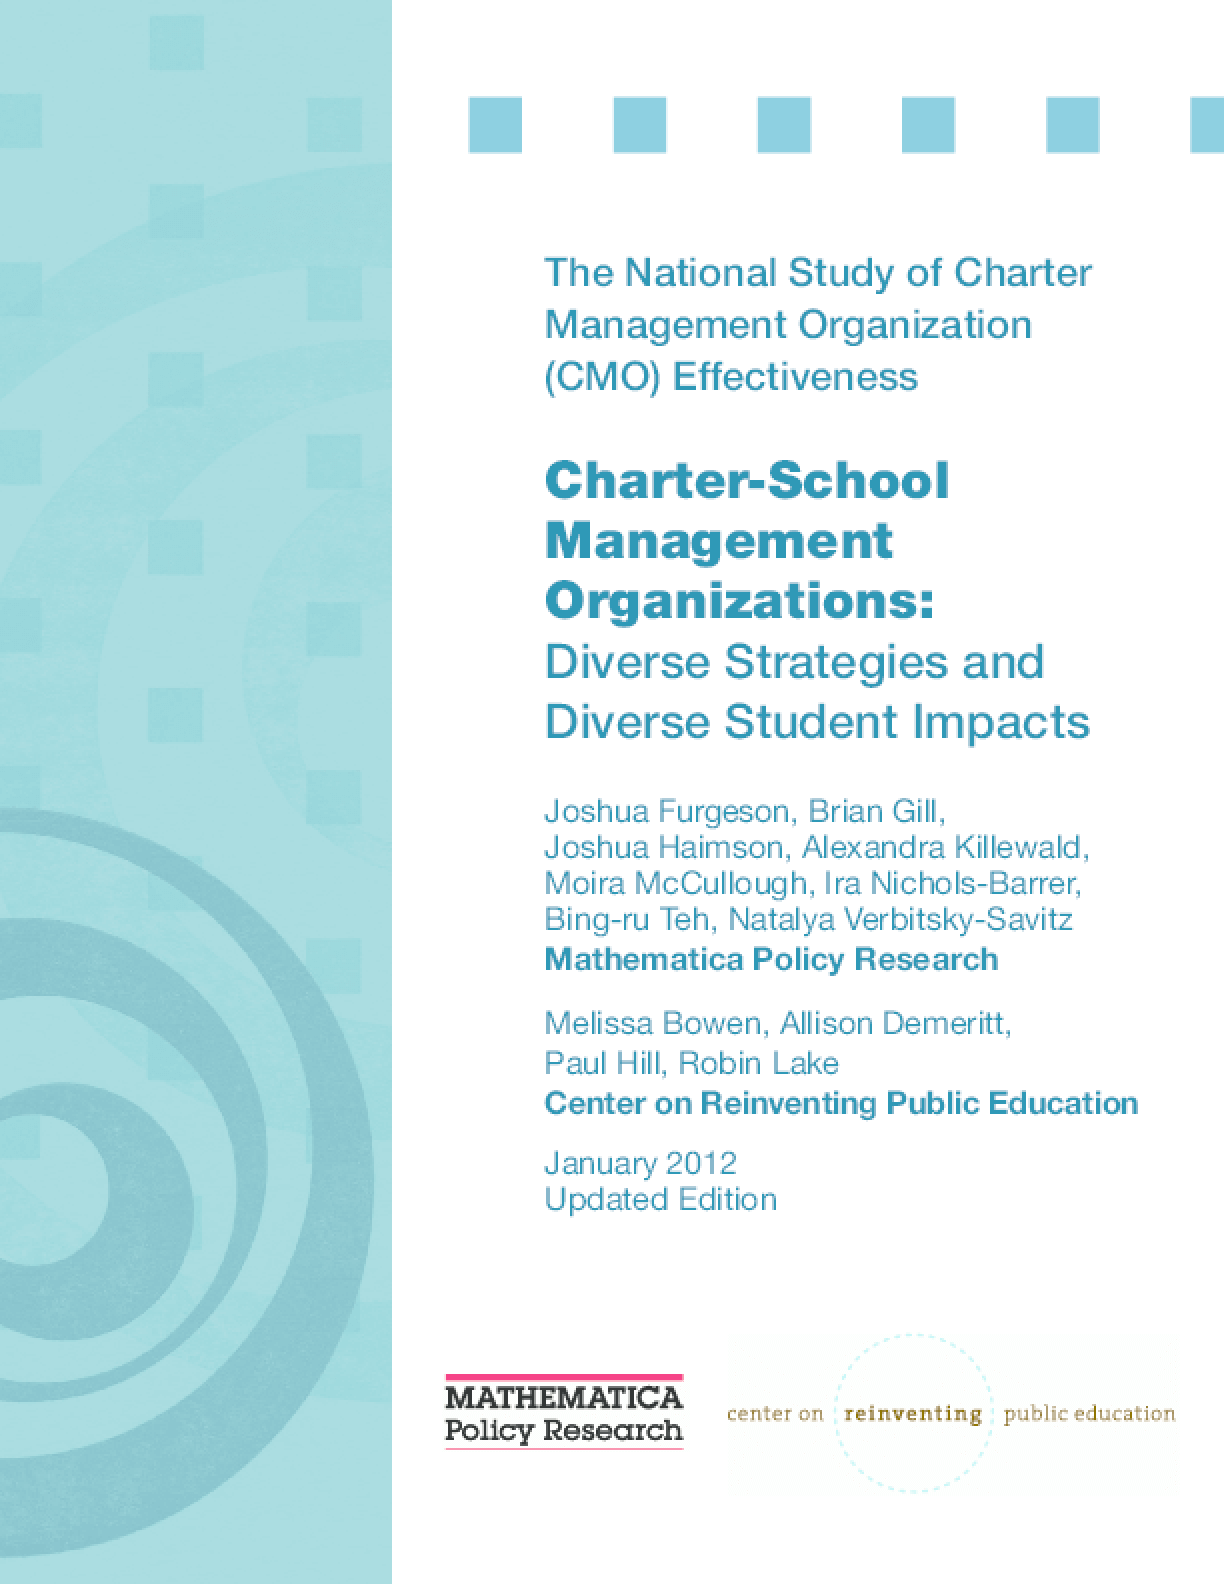 Charter-School Management Organizations: Diverse Strategies and Diverse Student Impacts